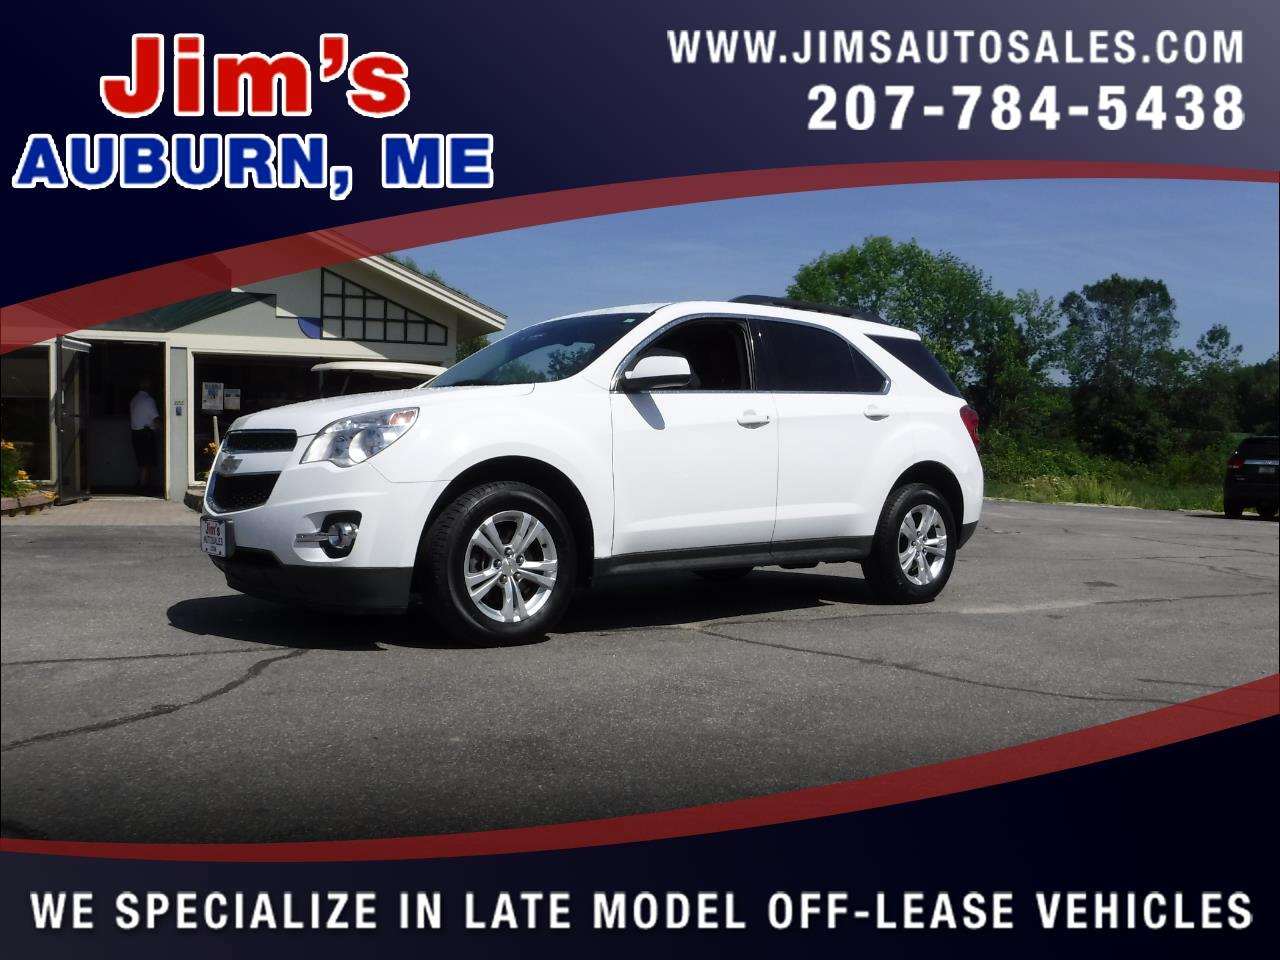 Chevrolet Equinox 2012 for Sale in Auburn, ME